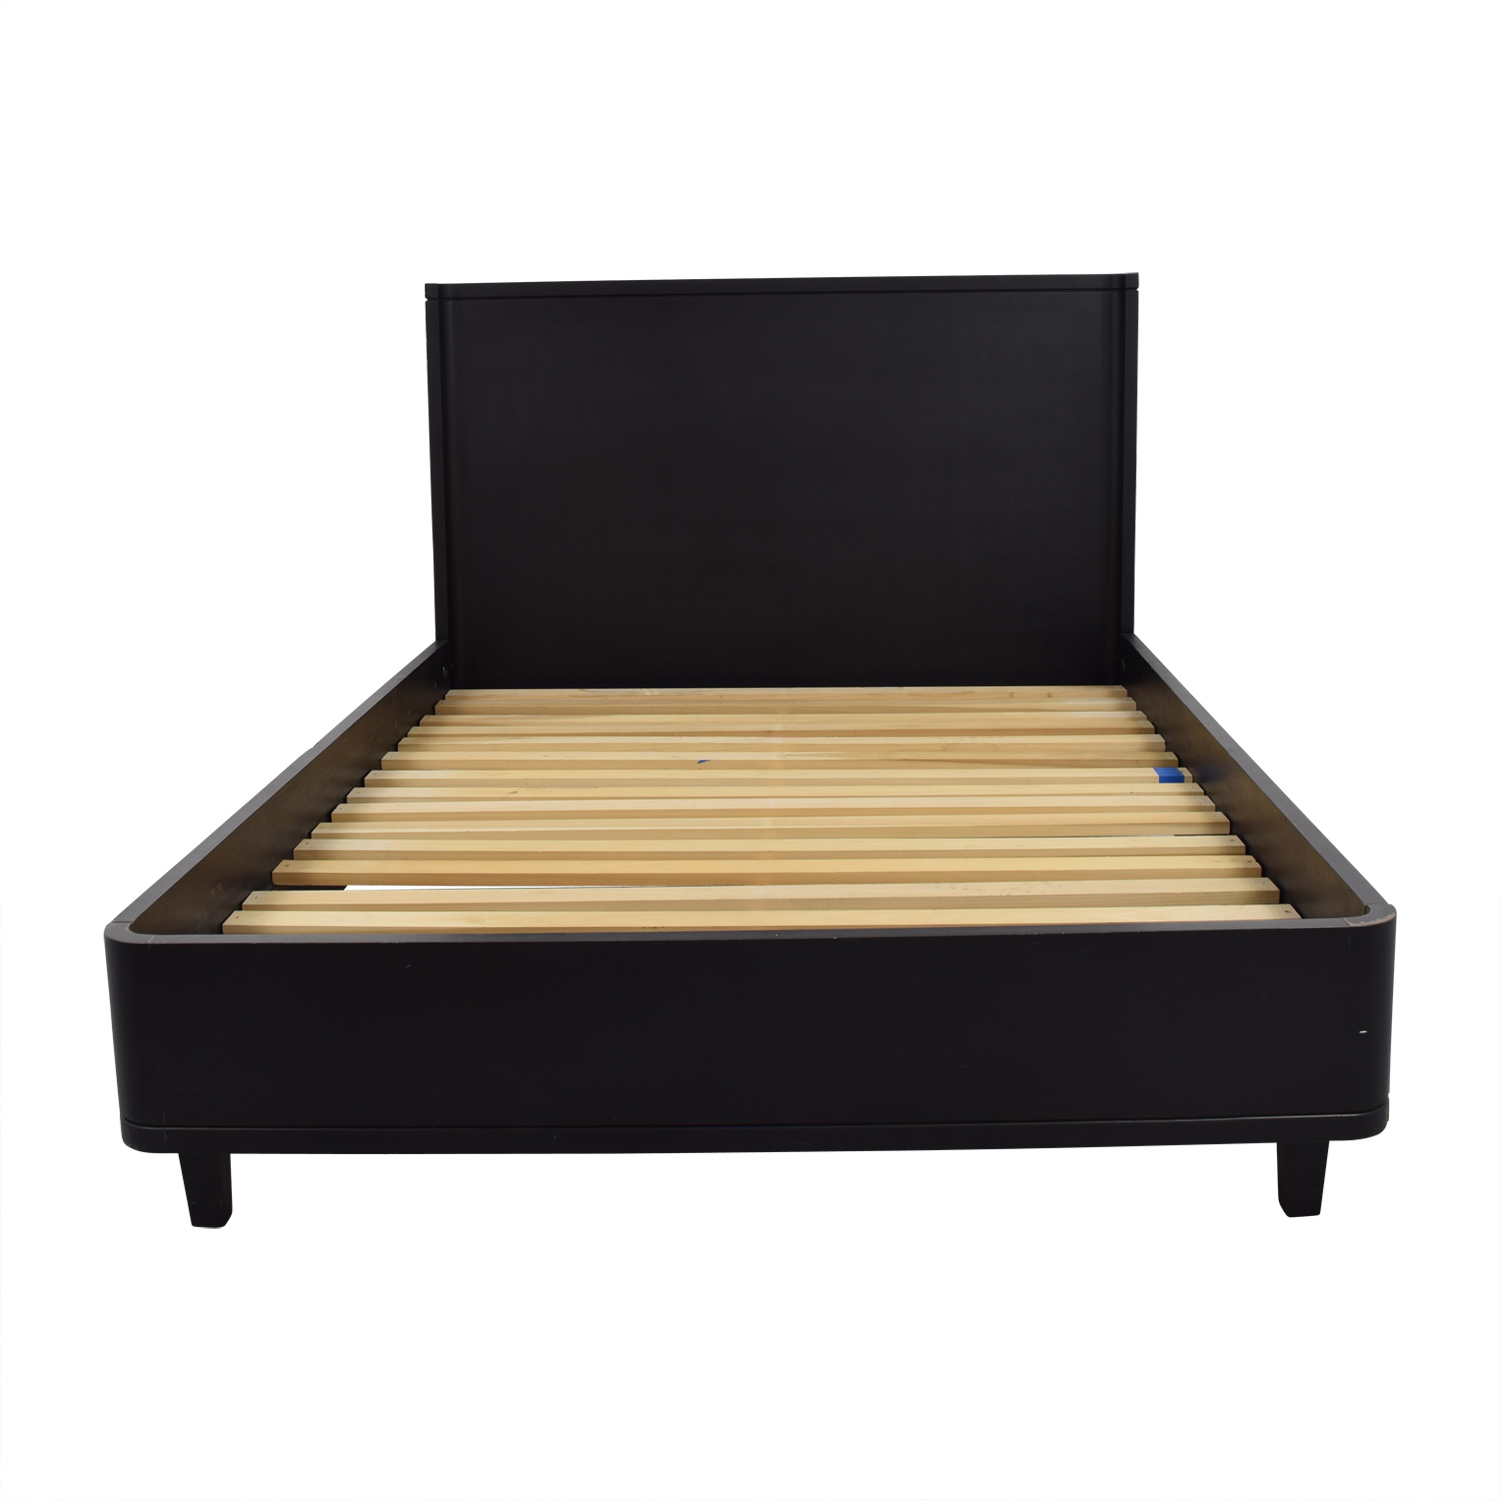 Queen Bed Sale 69 Off Crate Barrel Crate Barrel Lasalle Queen Bed Frame Beds